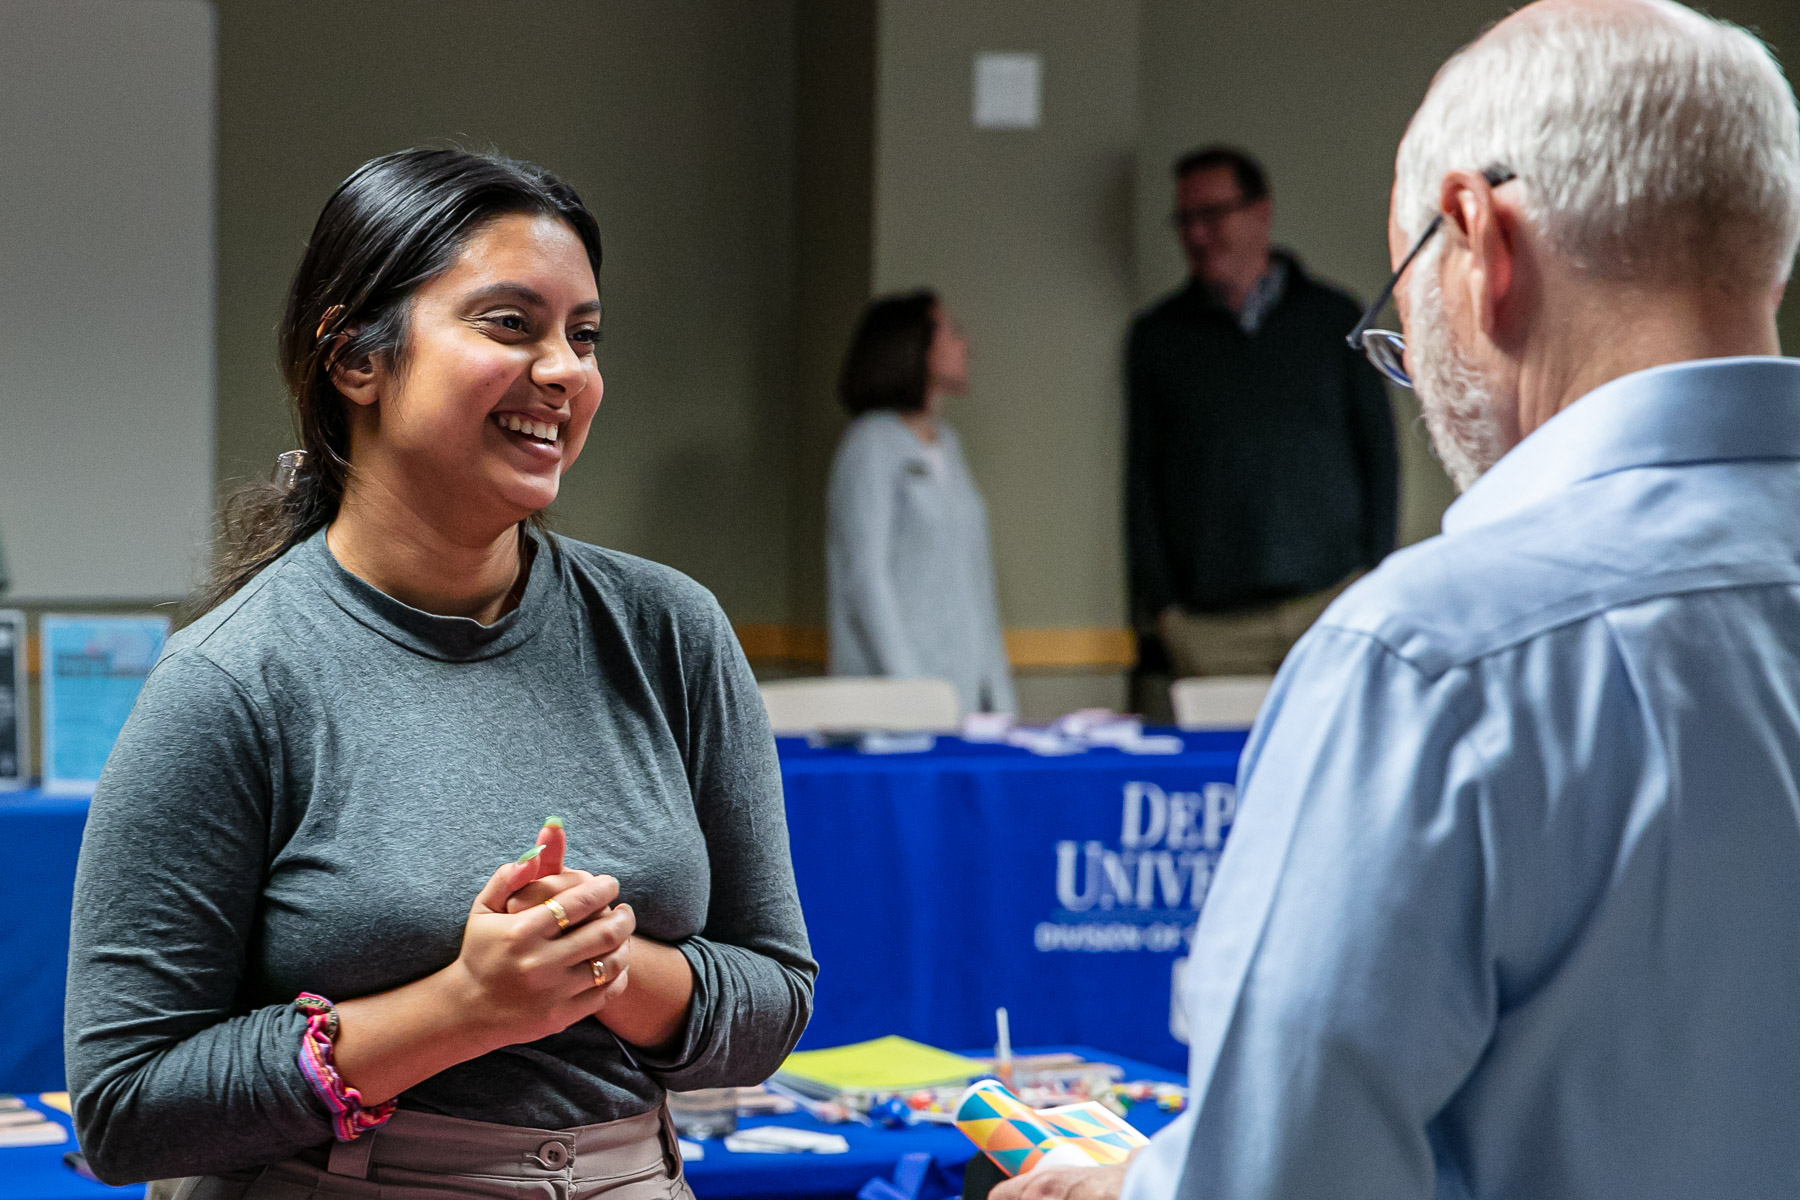 Representatives from Health Promotion and Wellness was in attendance to share information reguarding health programs beneficial for both students and faculty. (DePaul University/Randall Spriggs)